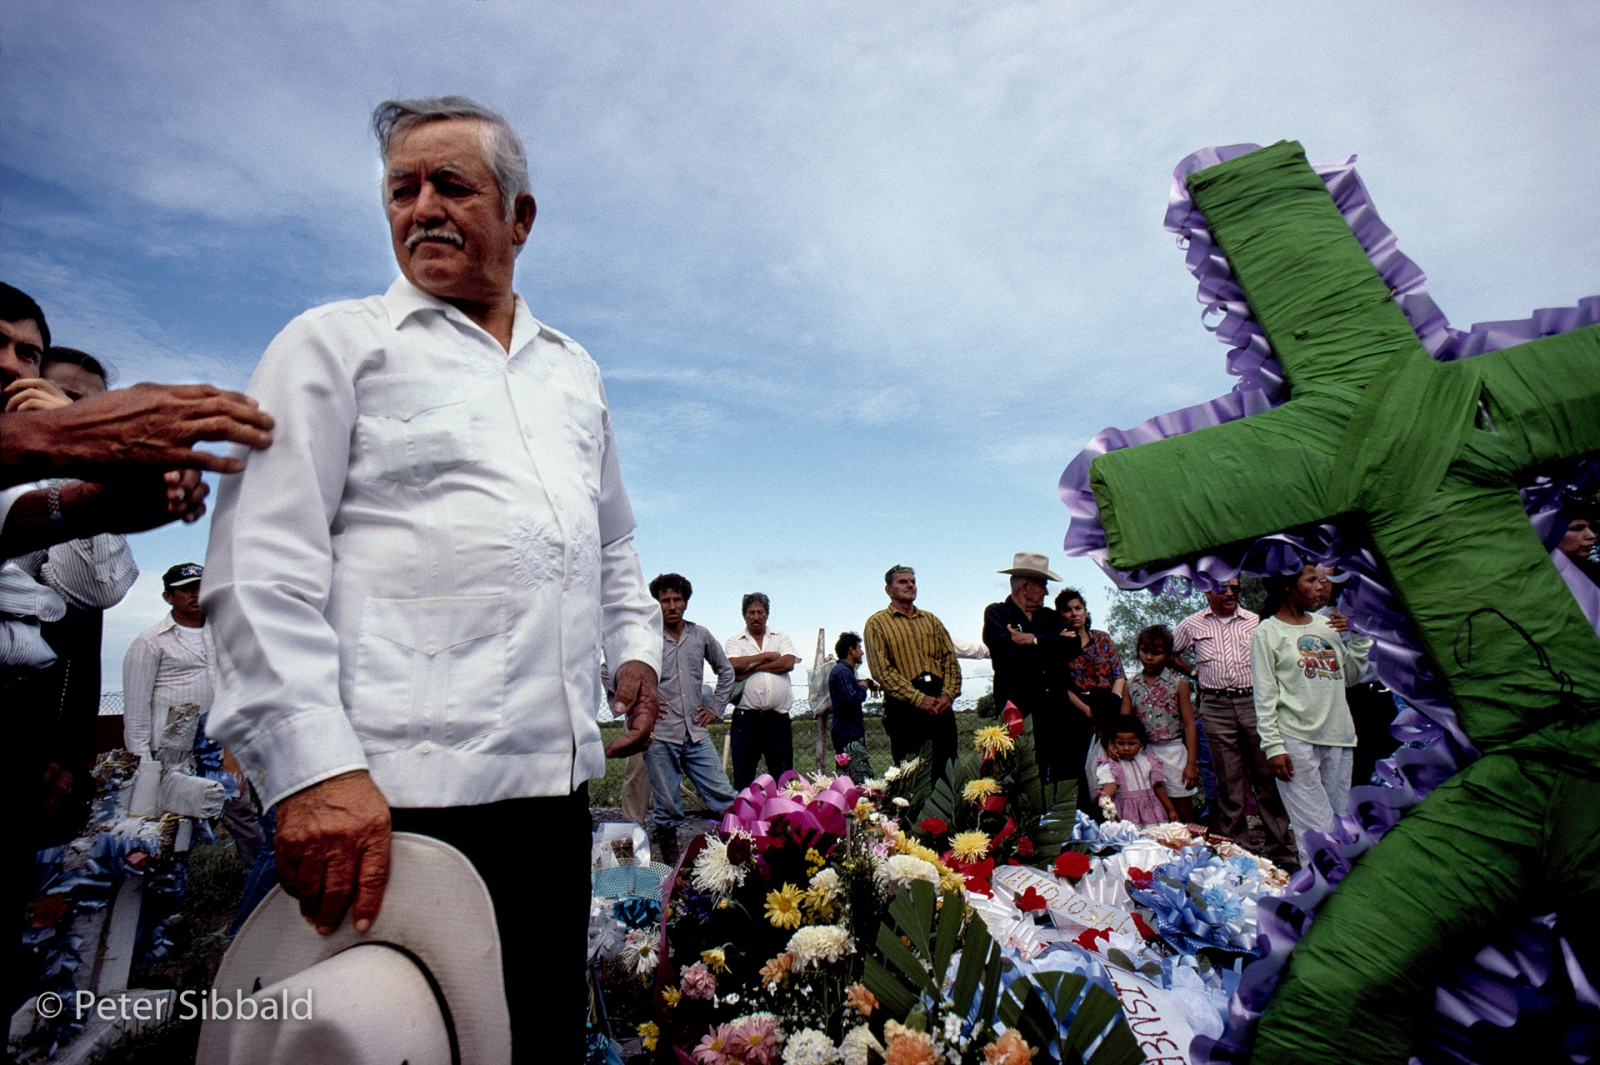 A man bids farewell at a funeral for his farmer brother on the outskirts of Matamoros. Most of the land along the Rio Grande was traditionally farmed. Nowadays, farming is being discouraged and even when land is not outright expropriated as in the case of Las Rusias, often it falls into the hands of industrialists when old farmers die. The fate of this farm remains uncertain. © Peter Sibbald, 1993